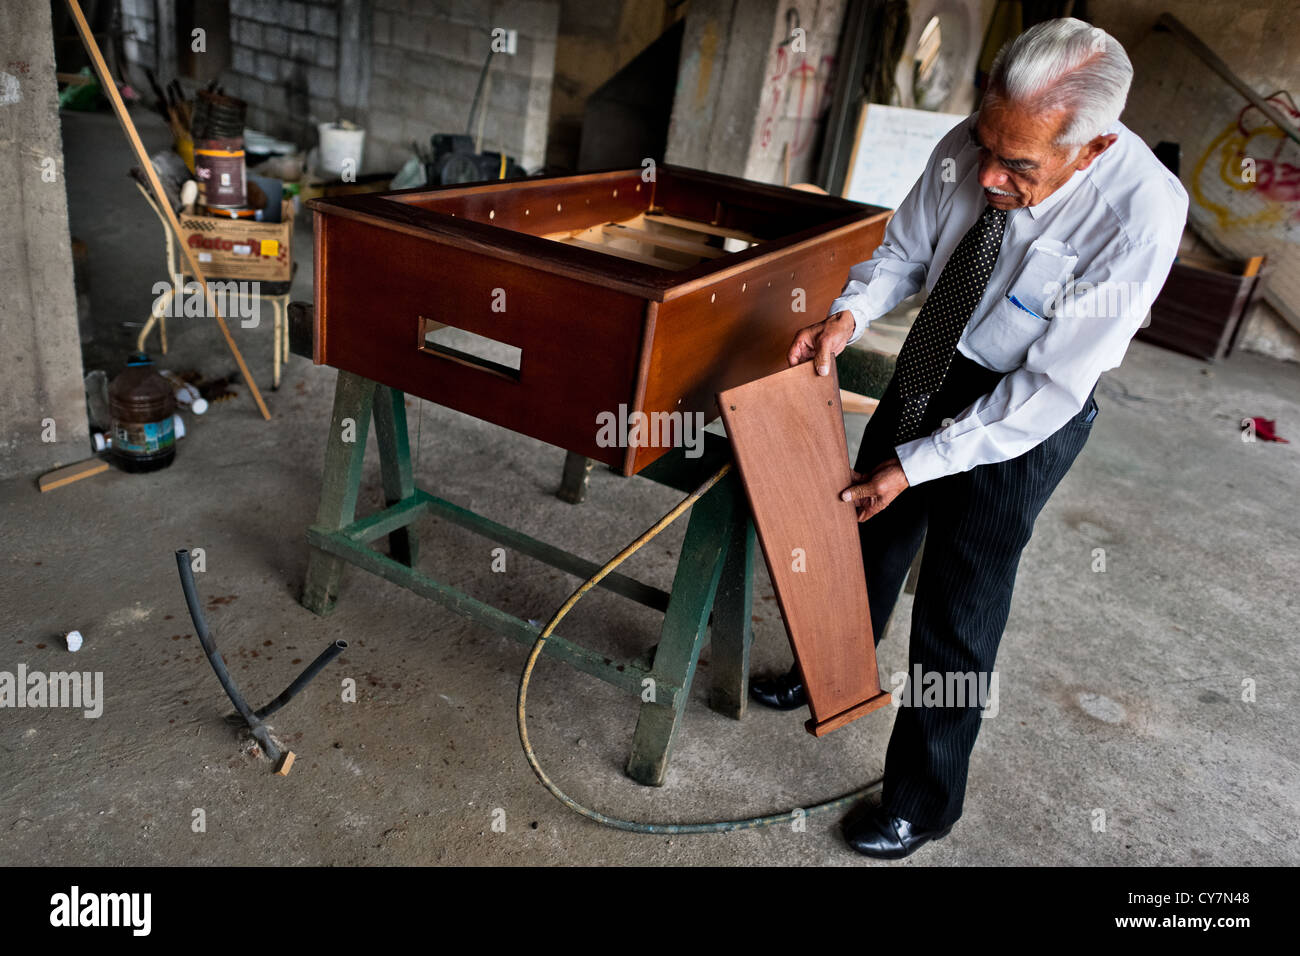 Efraín Cepeda, a table football workshop owner, shows an unfinished table in his workshop, Quito, Ecuador. - Stock Image